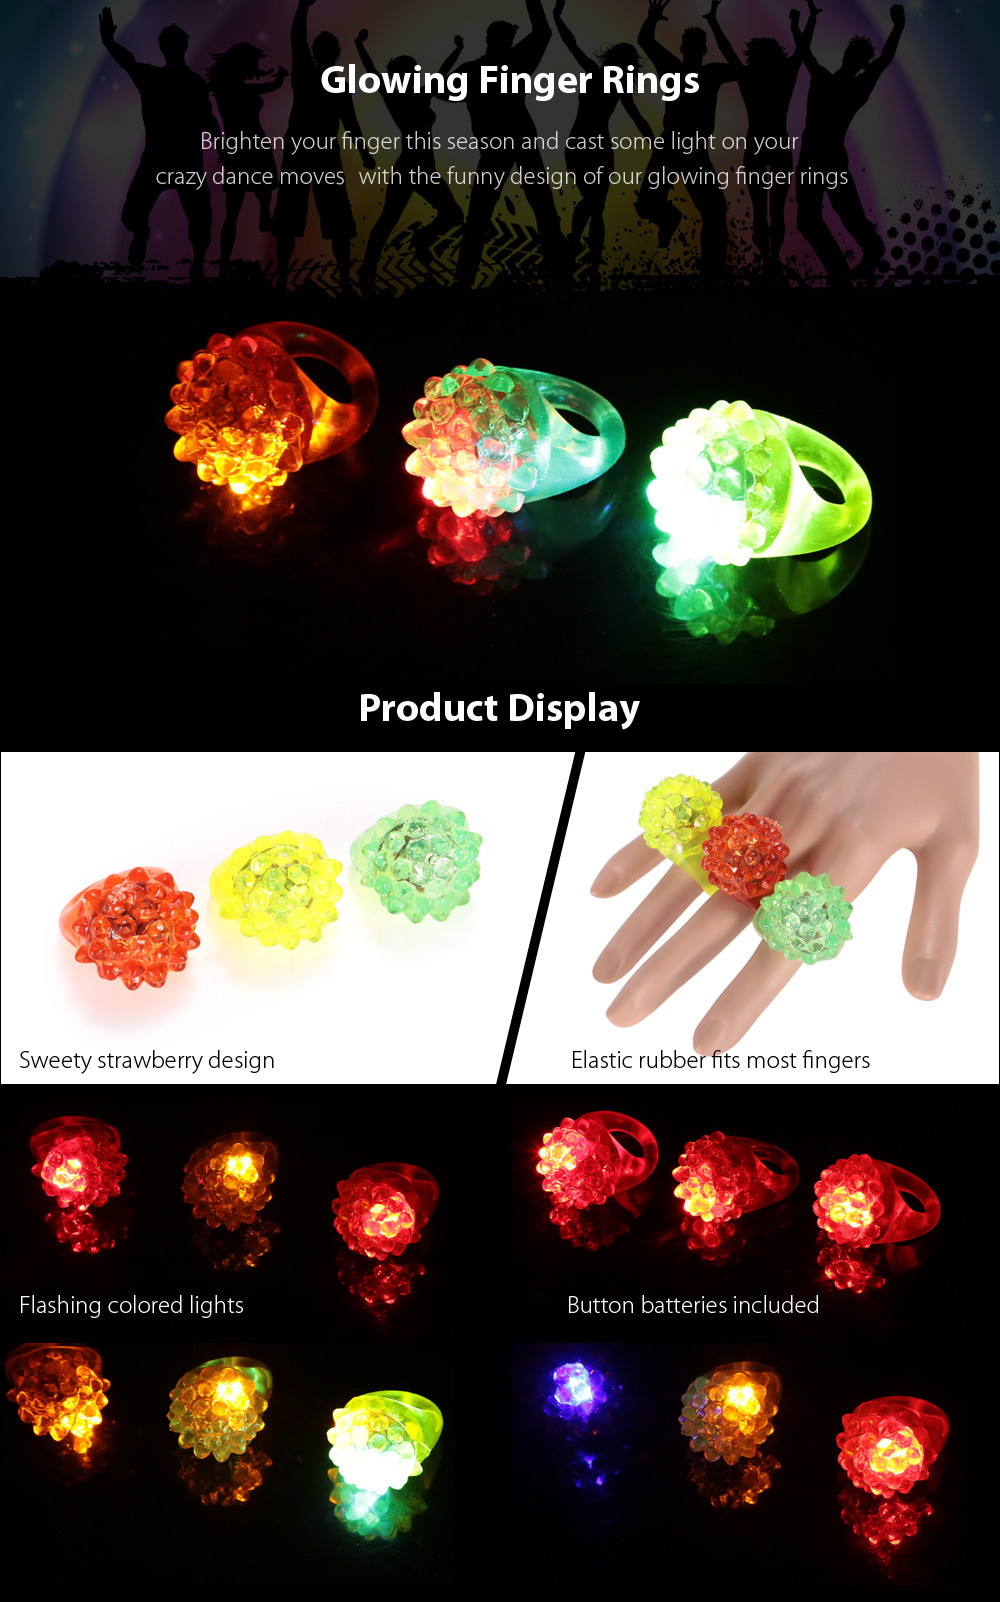 3PCS BRELONG Glowing LED Finger Ring Christmas Halloween Festival Decoration